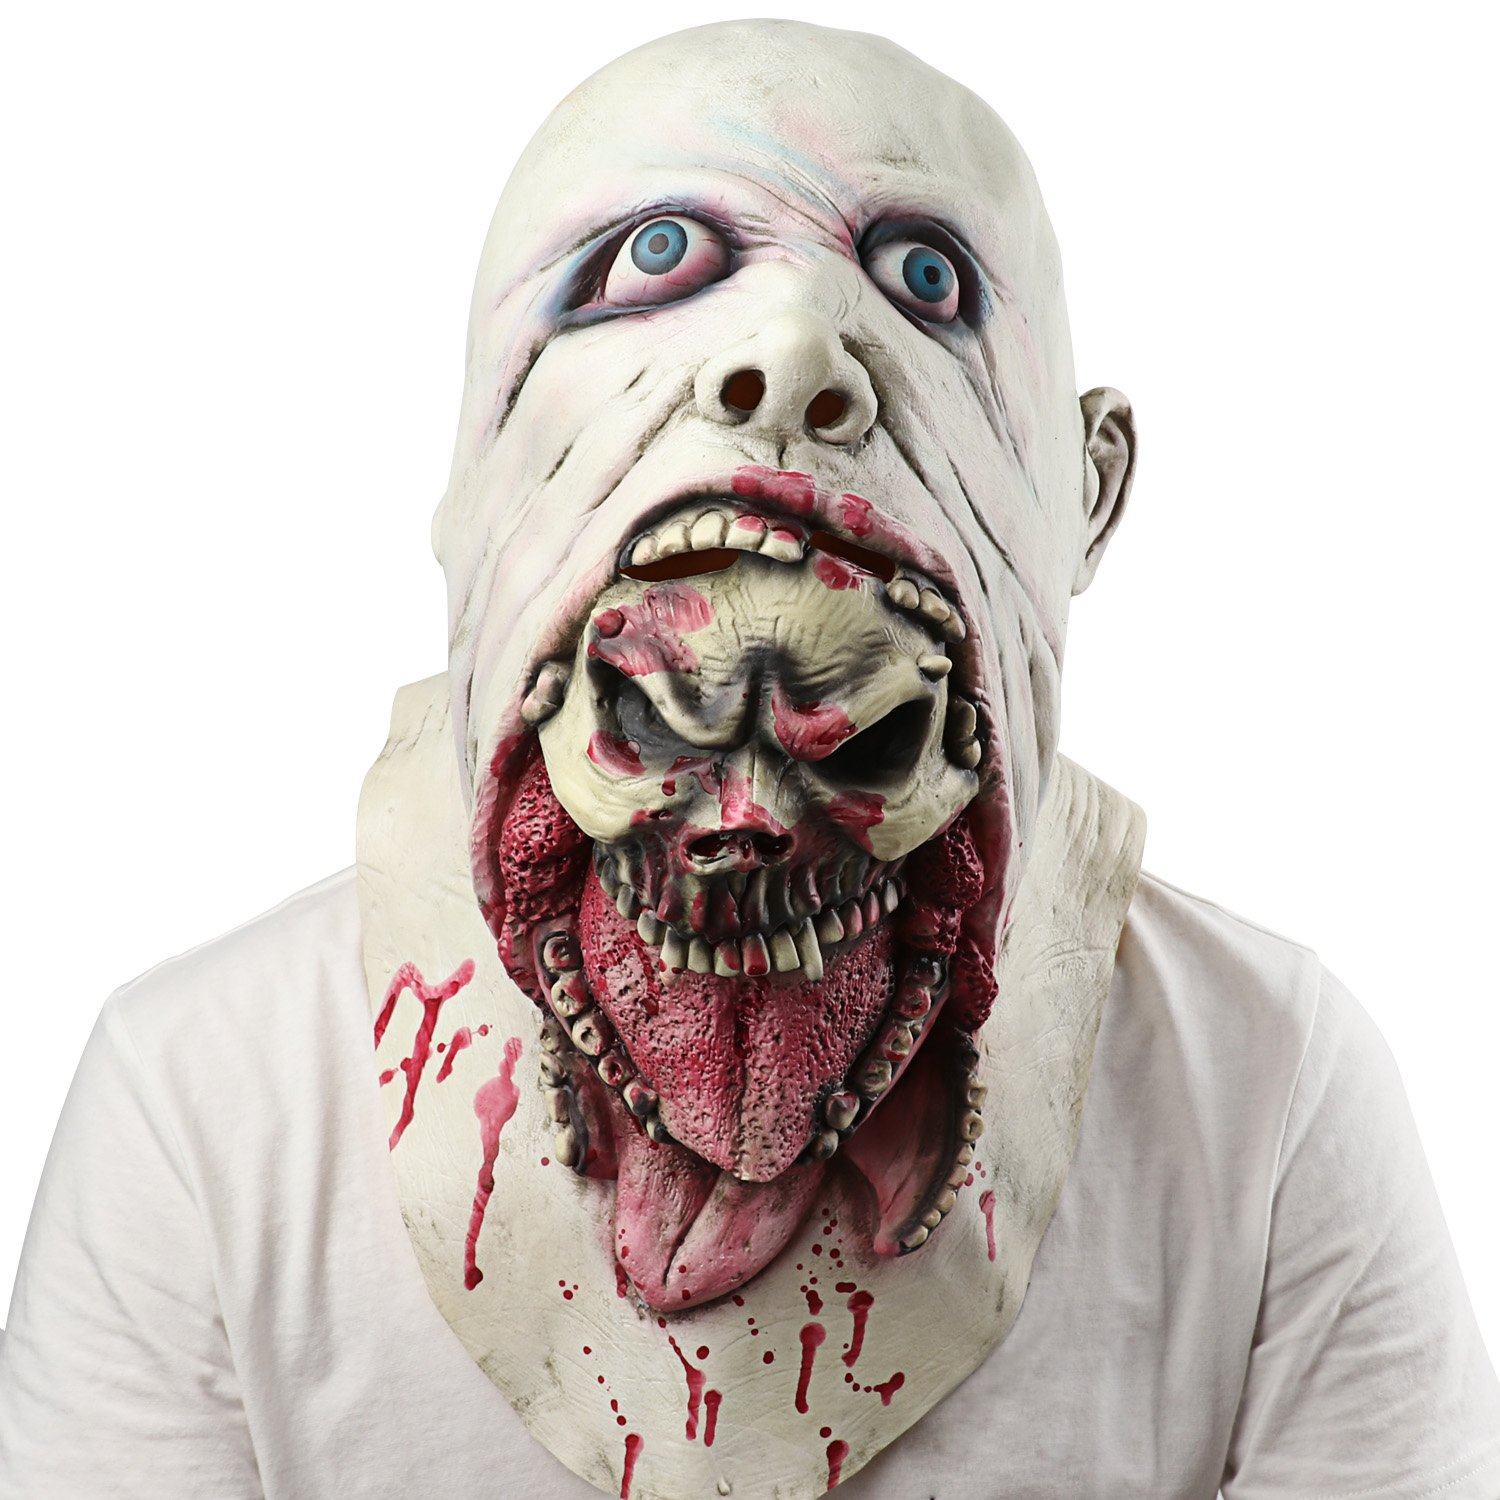 Monstleo Halloween Mask Scary Bleeding Zombie Horror face mask for Adults by Monstleo